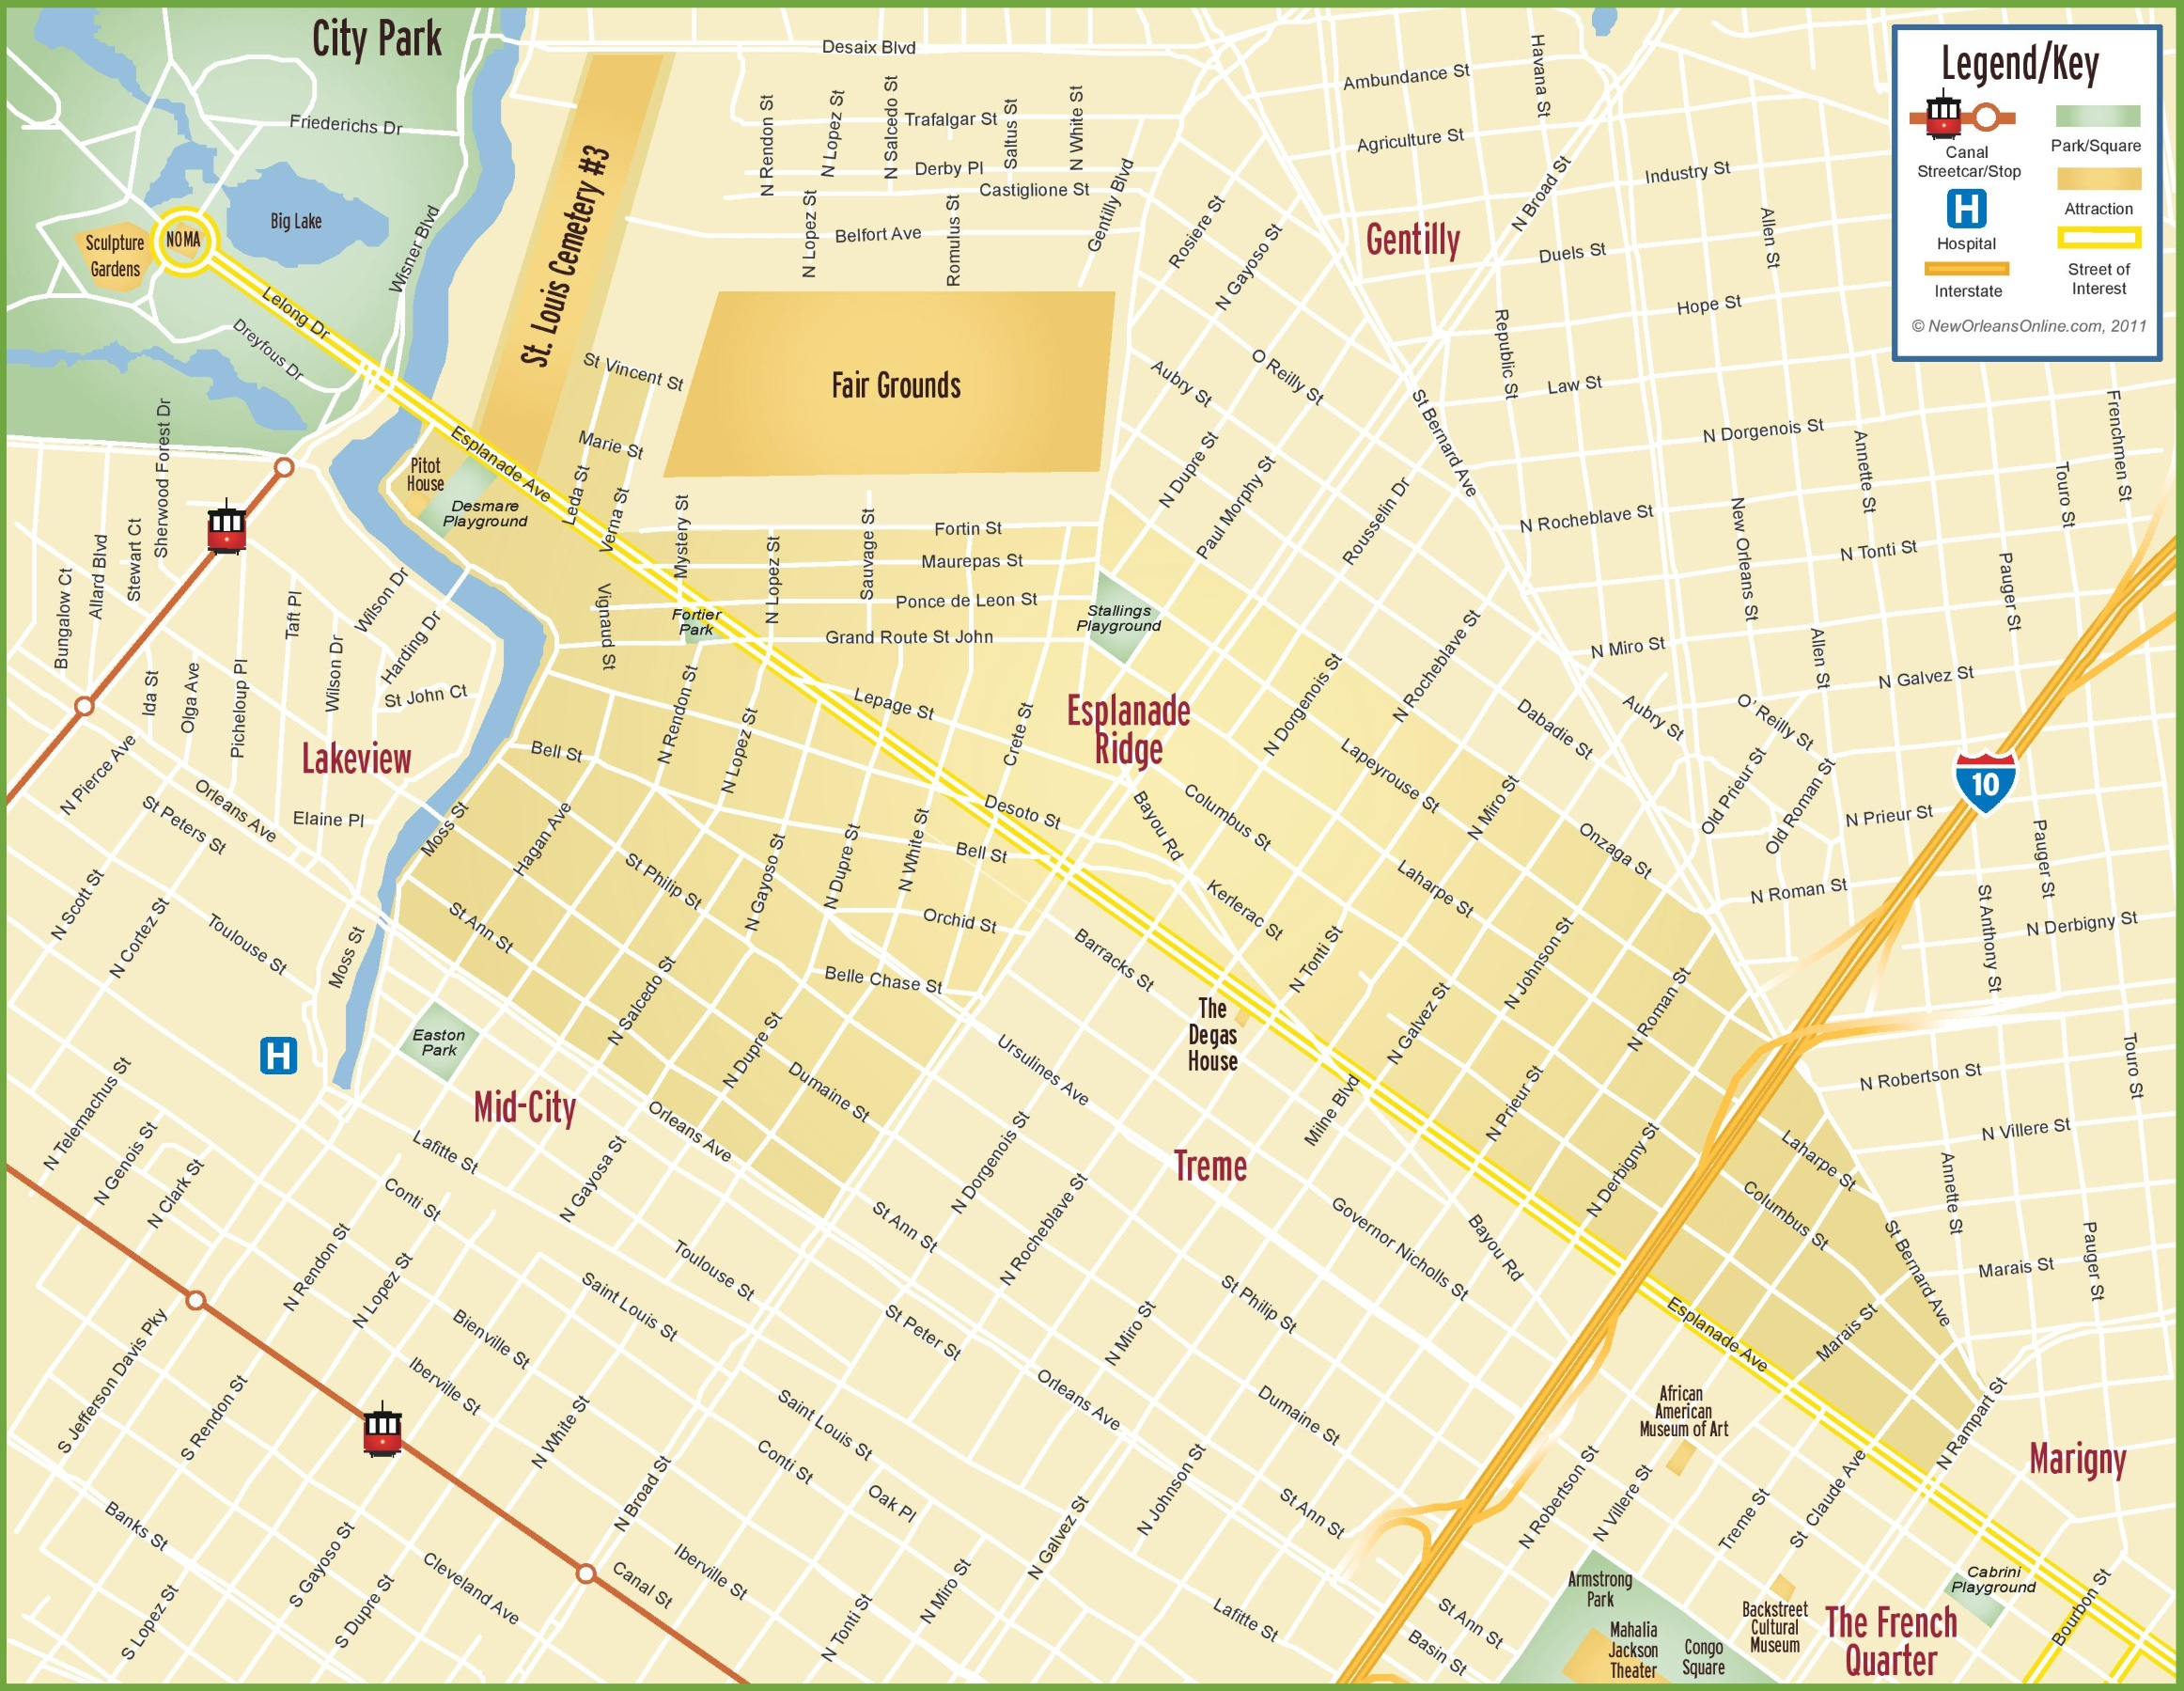 New Orleans Esplanade Ridge Map - New orleans usa map